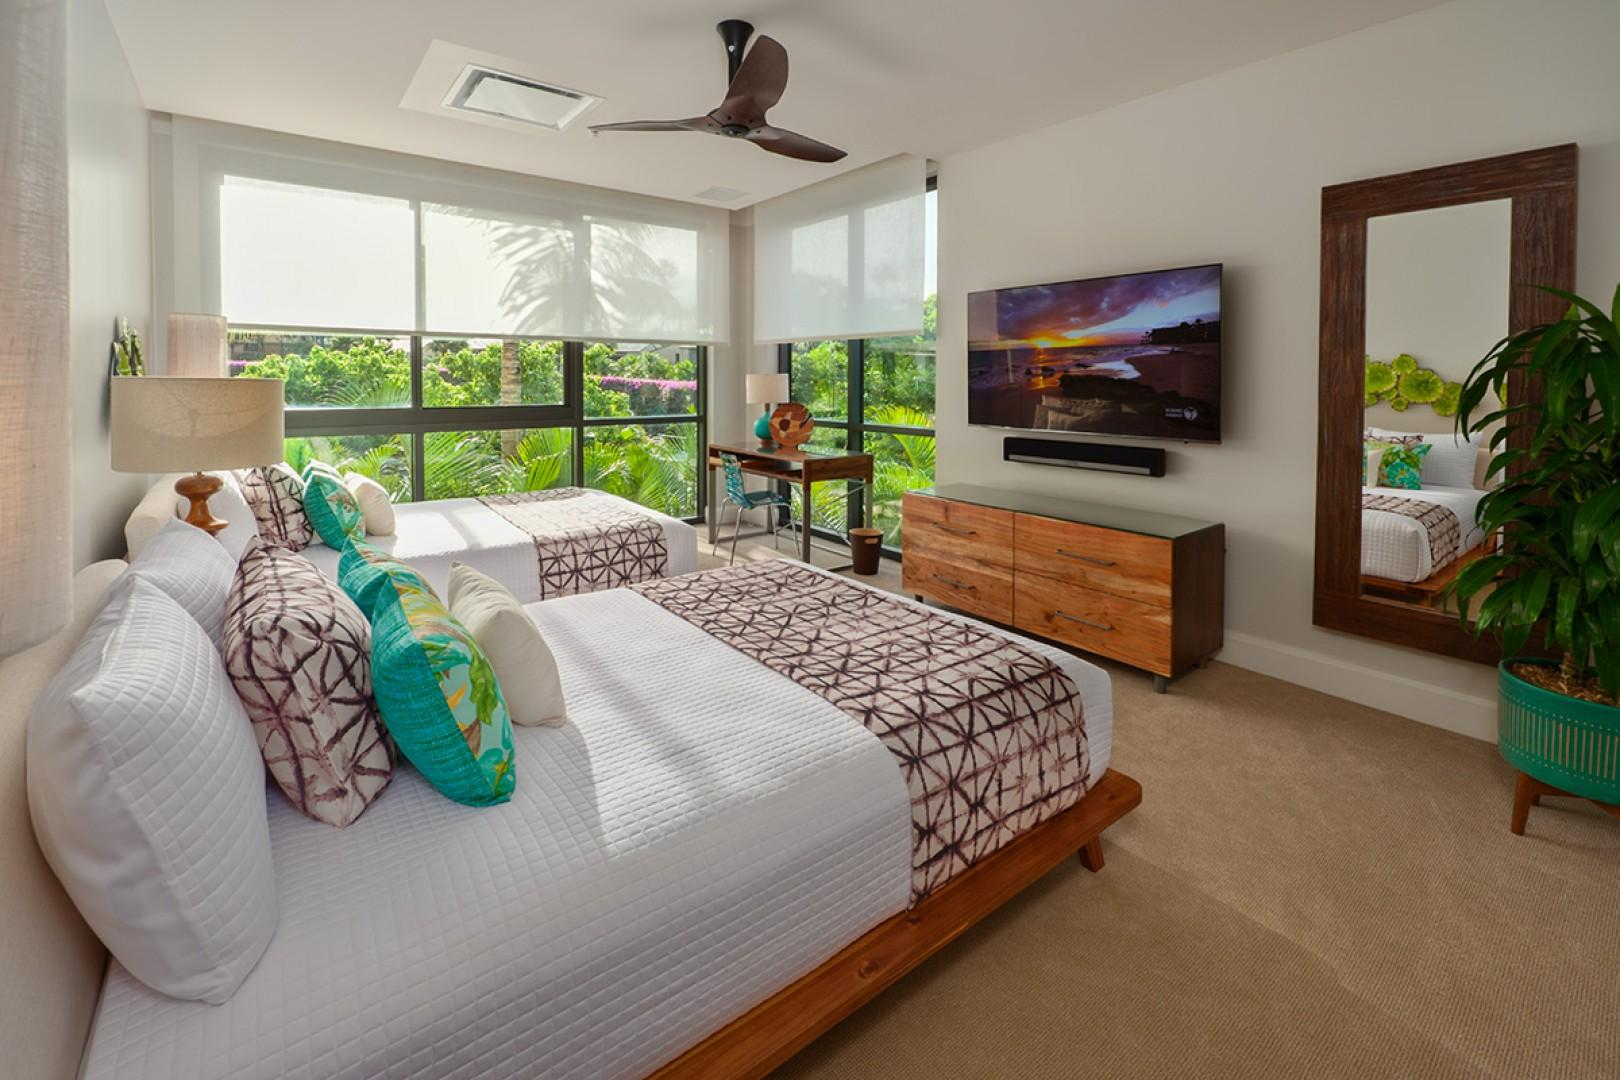 Third Bedroom Suite - Tropical Floral Garden View, Desk, 65